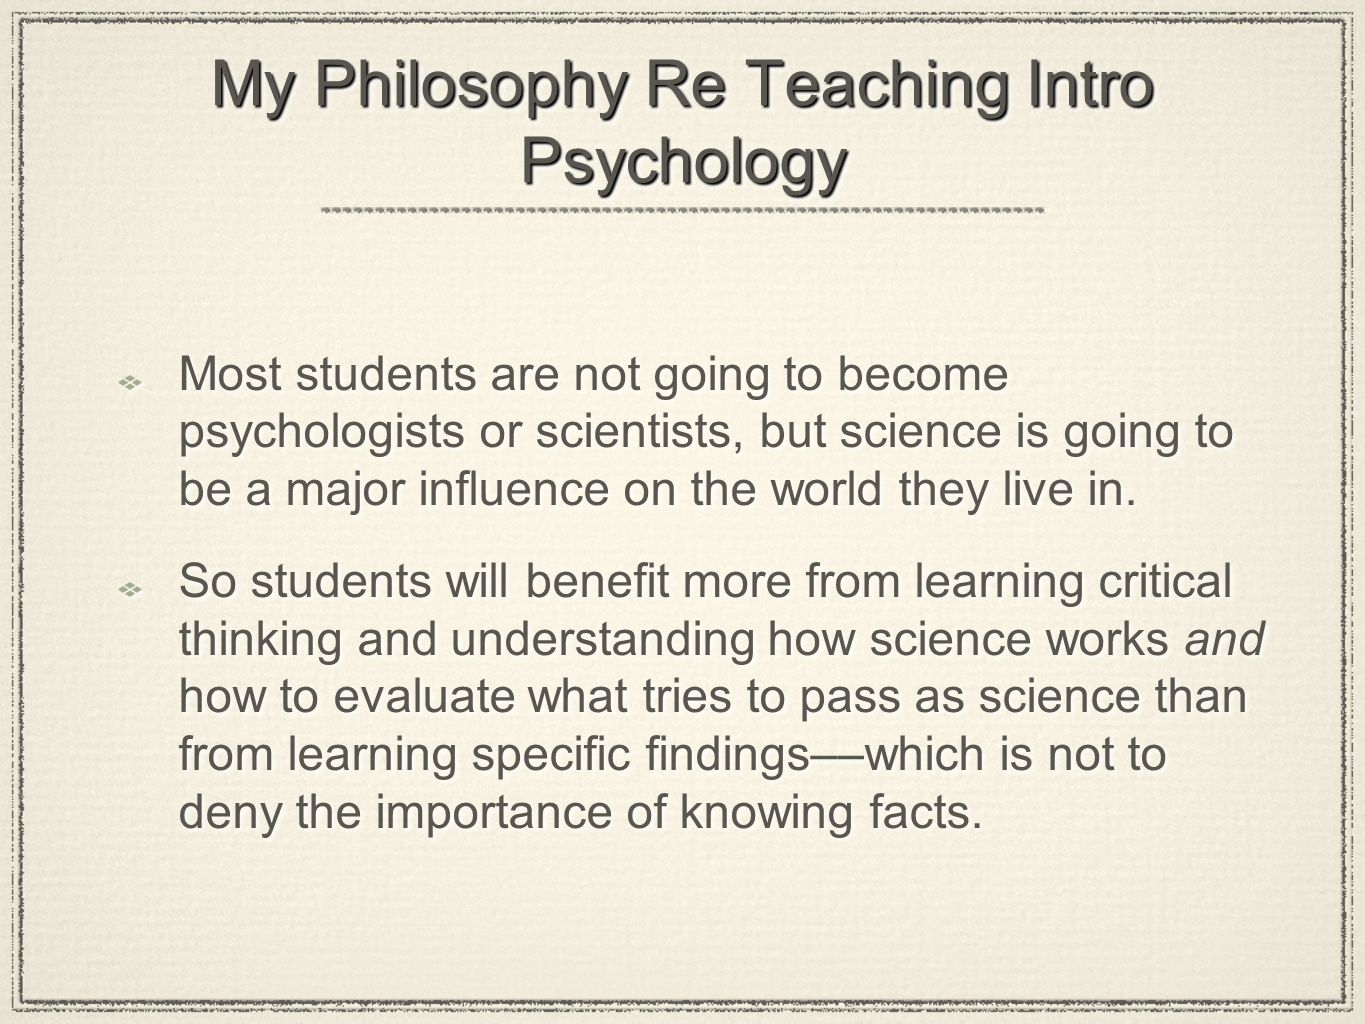 My Philosophy Re Teaching Intro Psychology